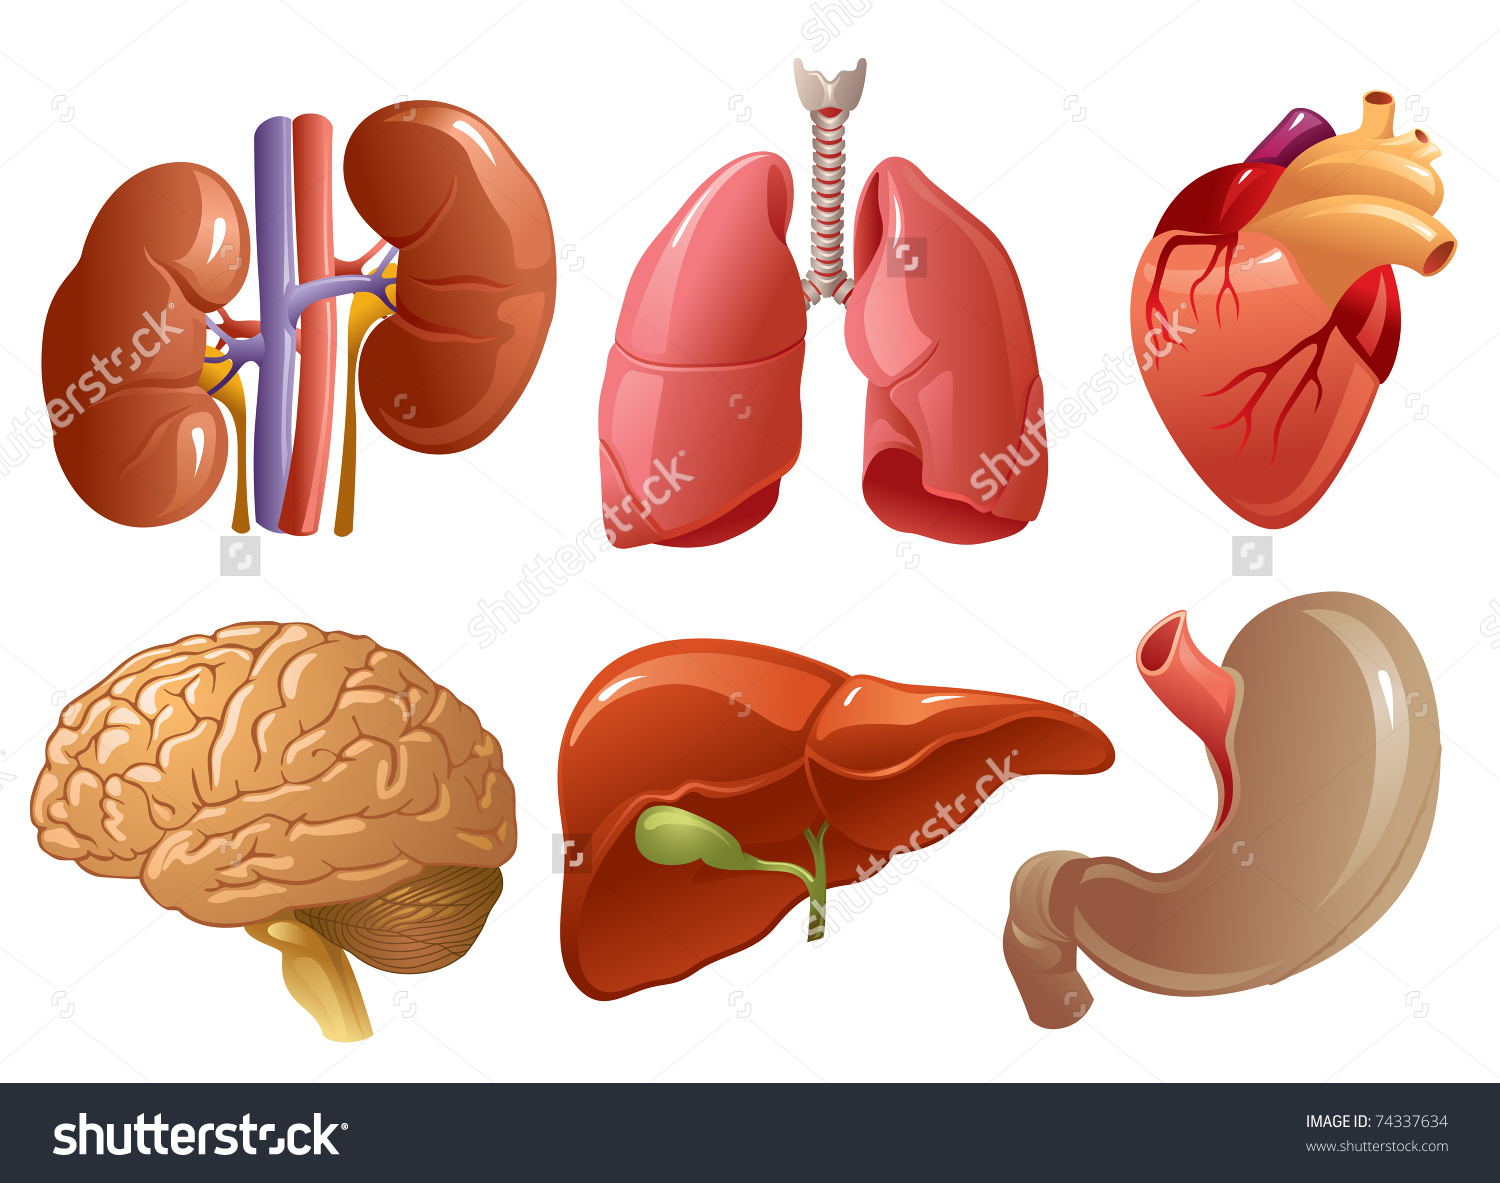 Collection of free Donating clipart organ. Download on.